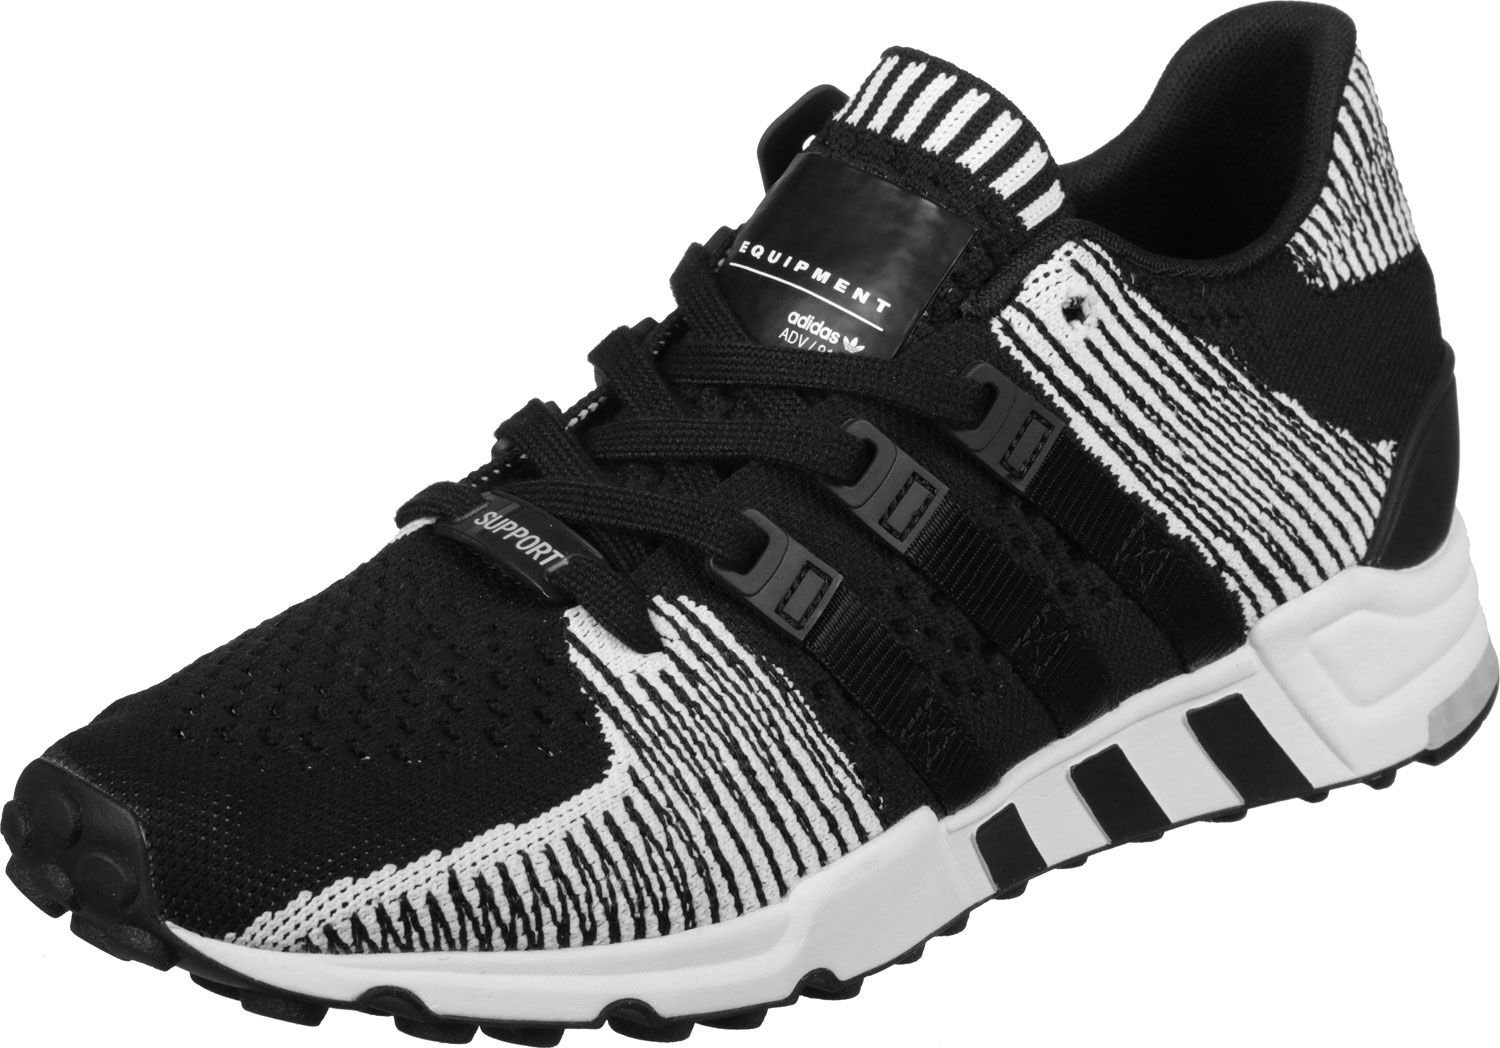 Adidas EQT Support RF Primeknit core blackfootwear white (BY9689)